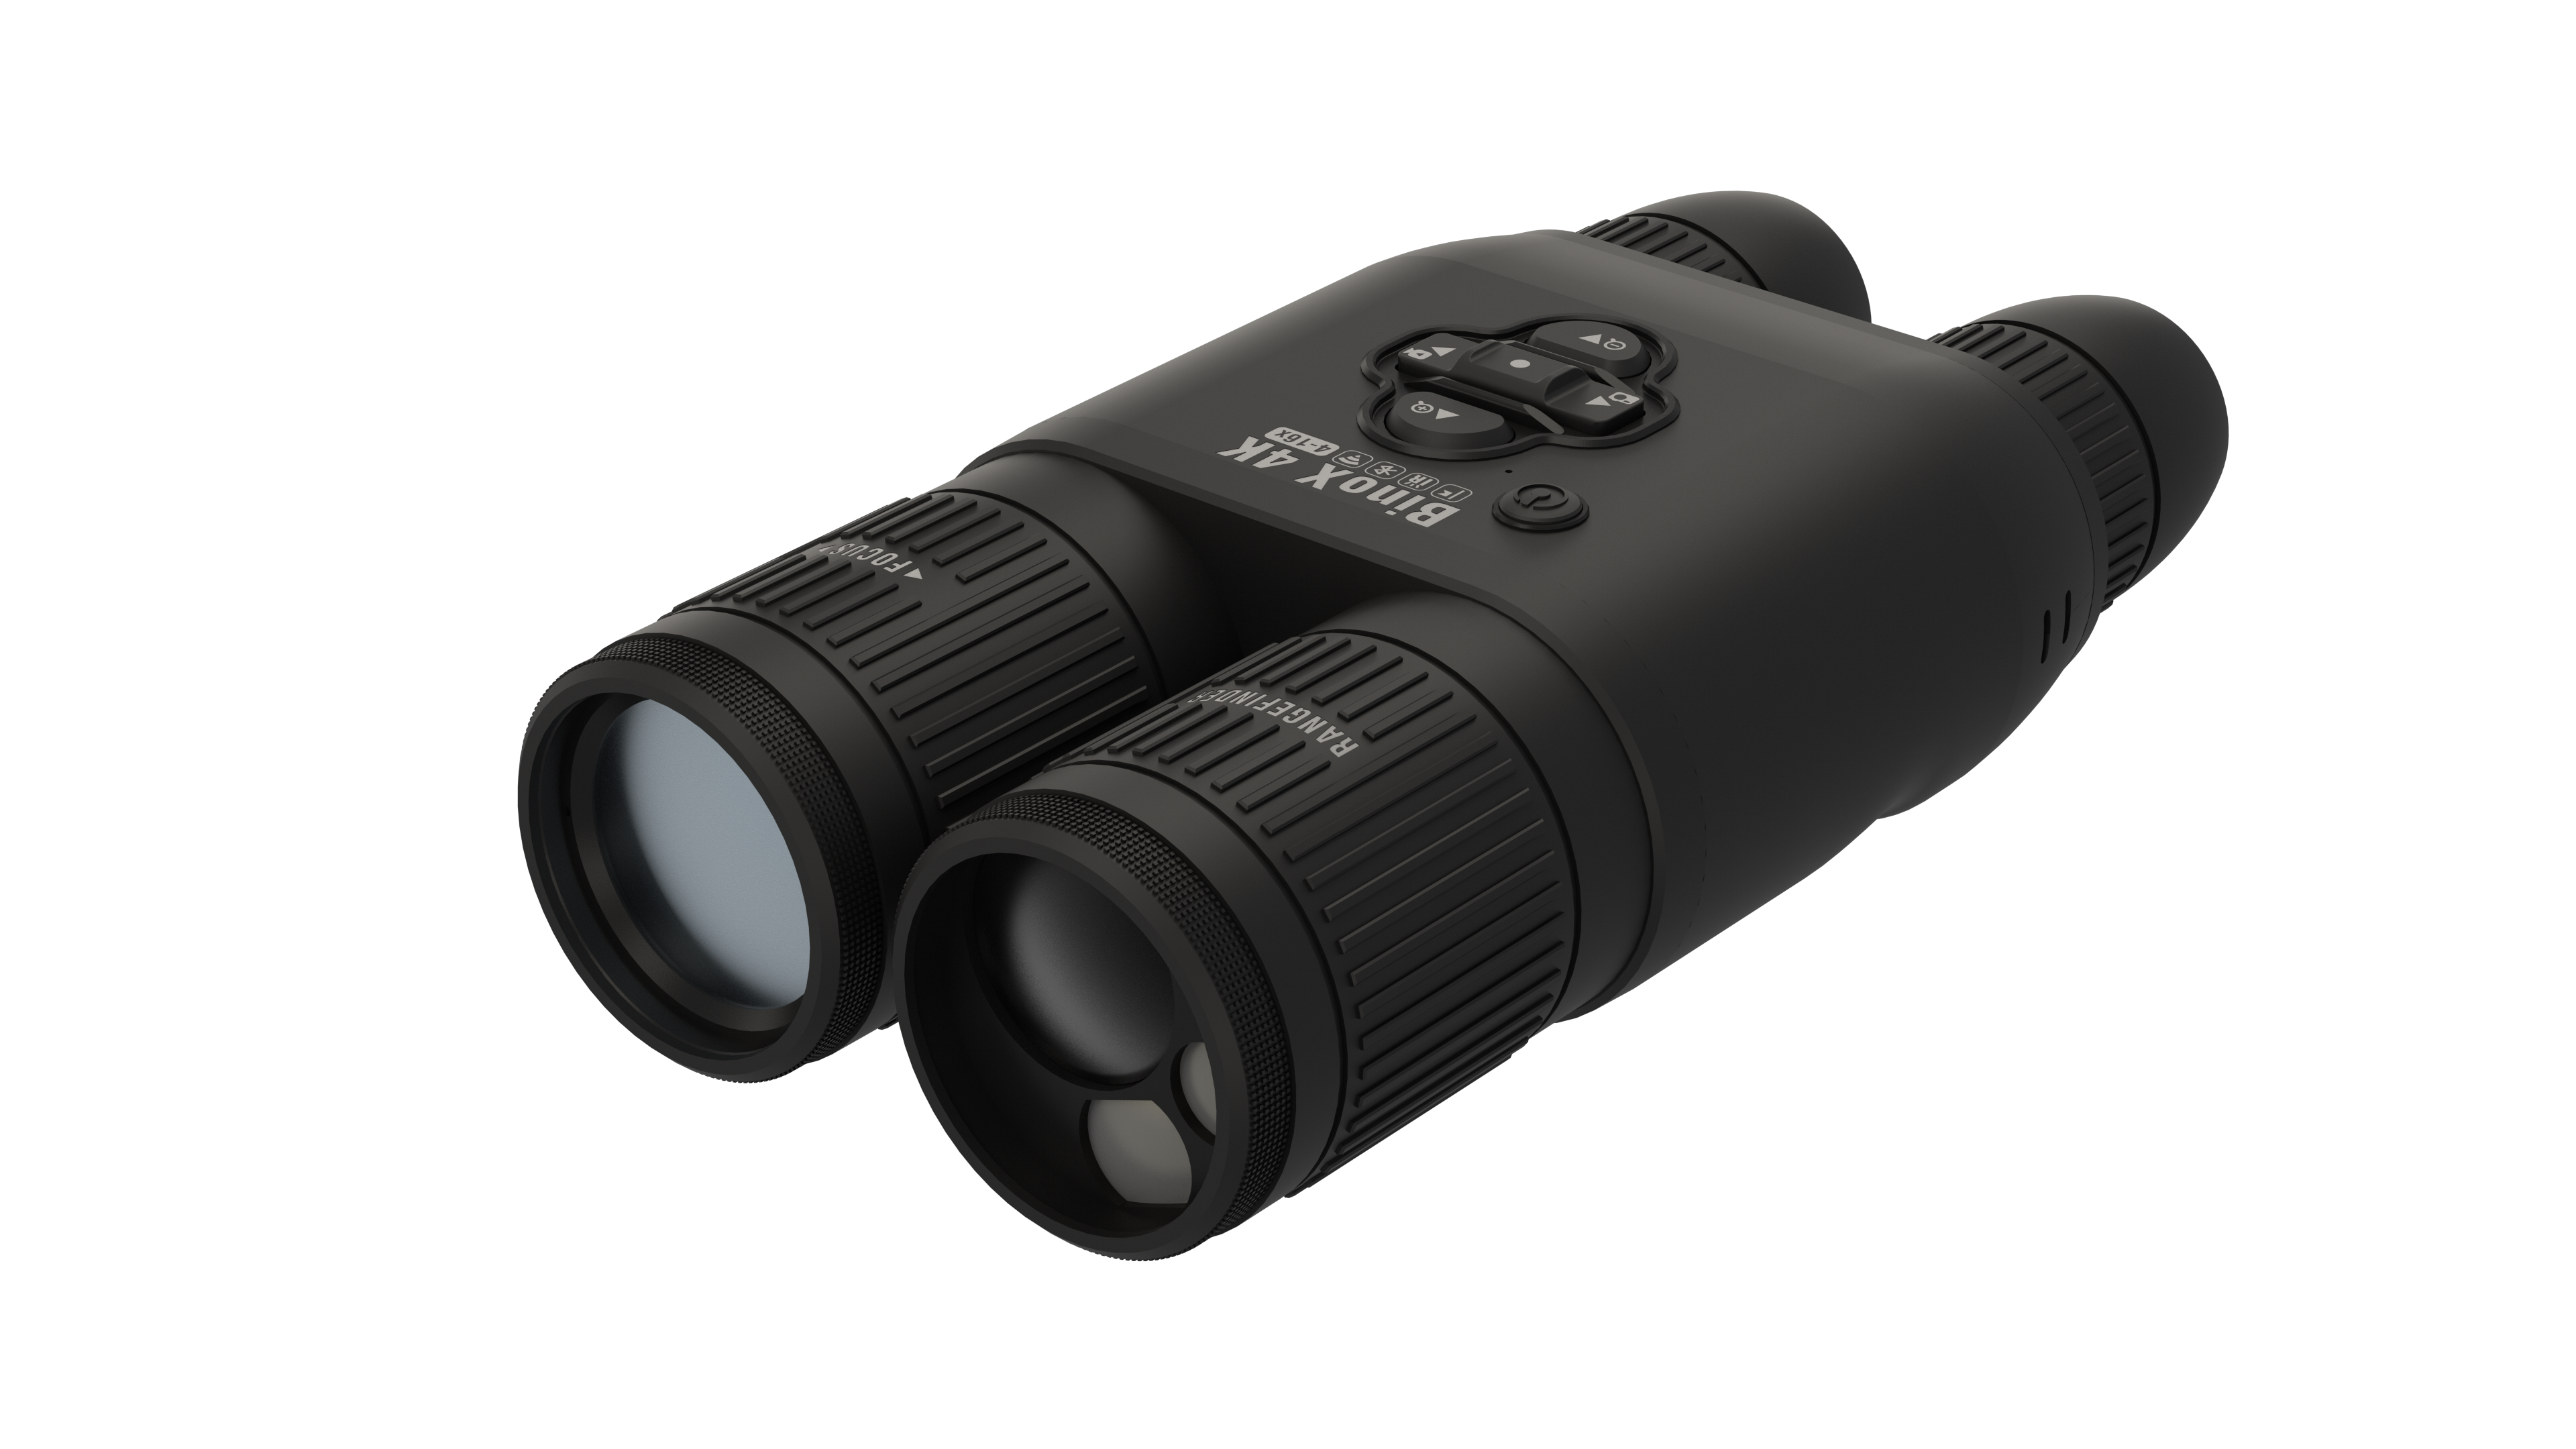 ATN BinoX-4K 4-16X Smart Day/Night Binoculars with Laser range finder